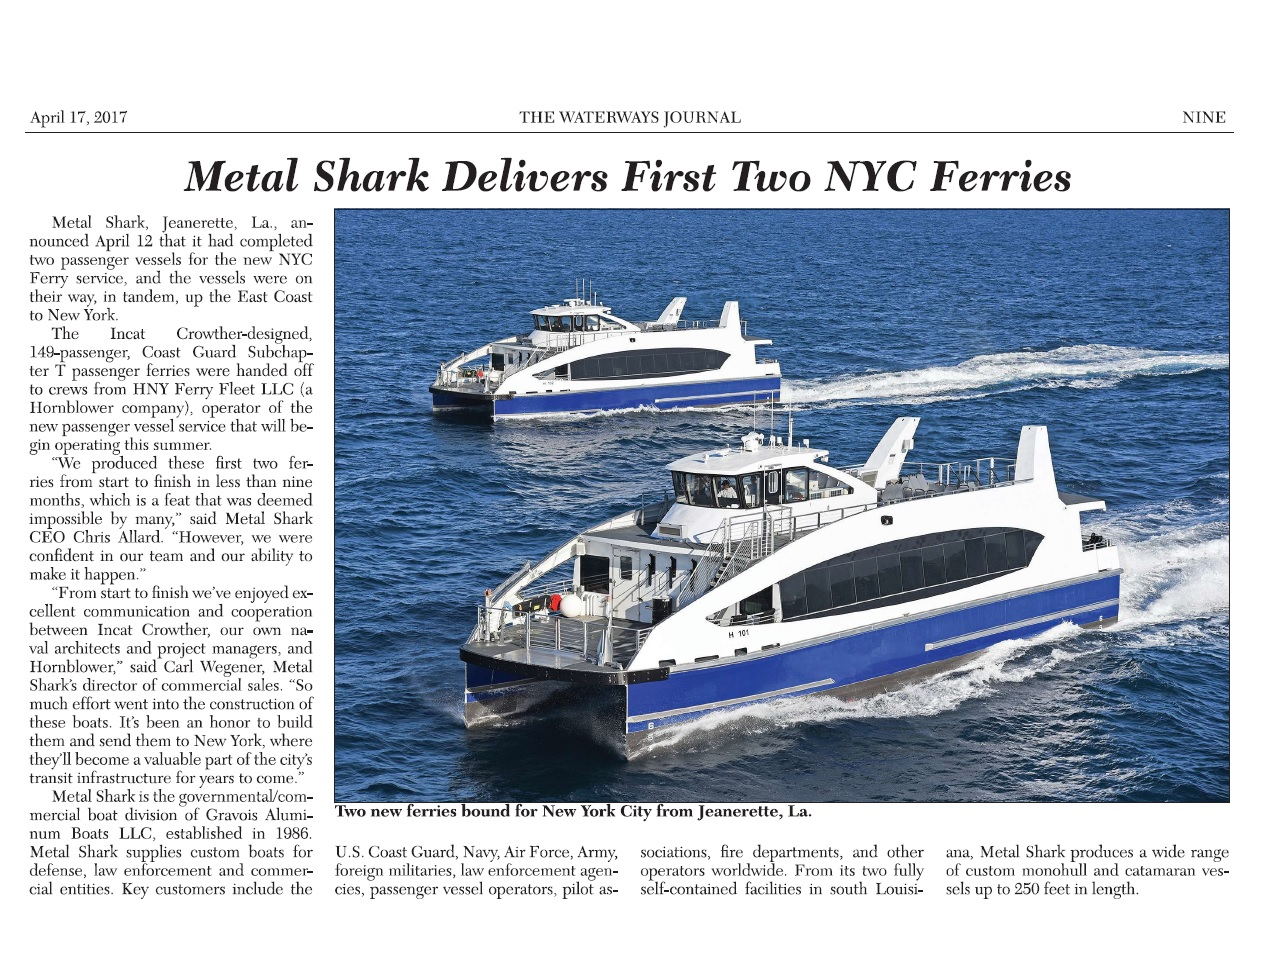 METAL SHARK FERRIES